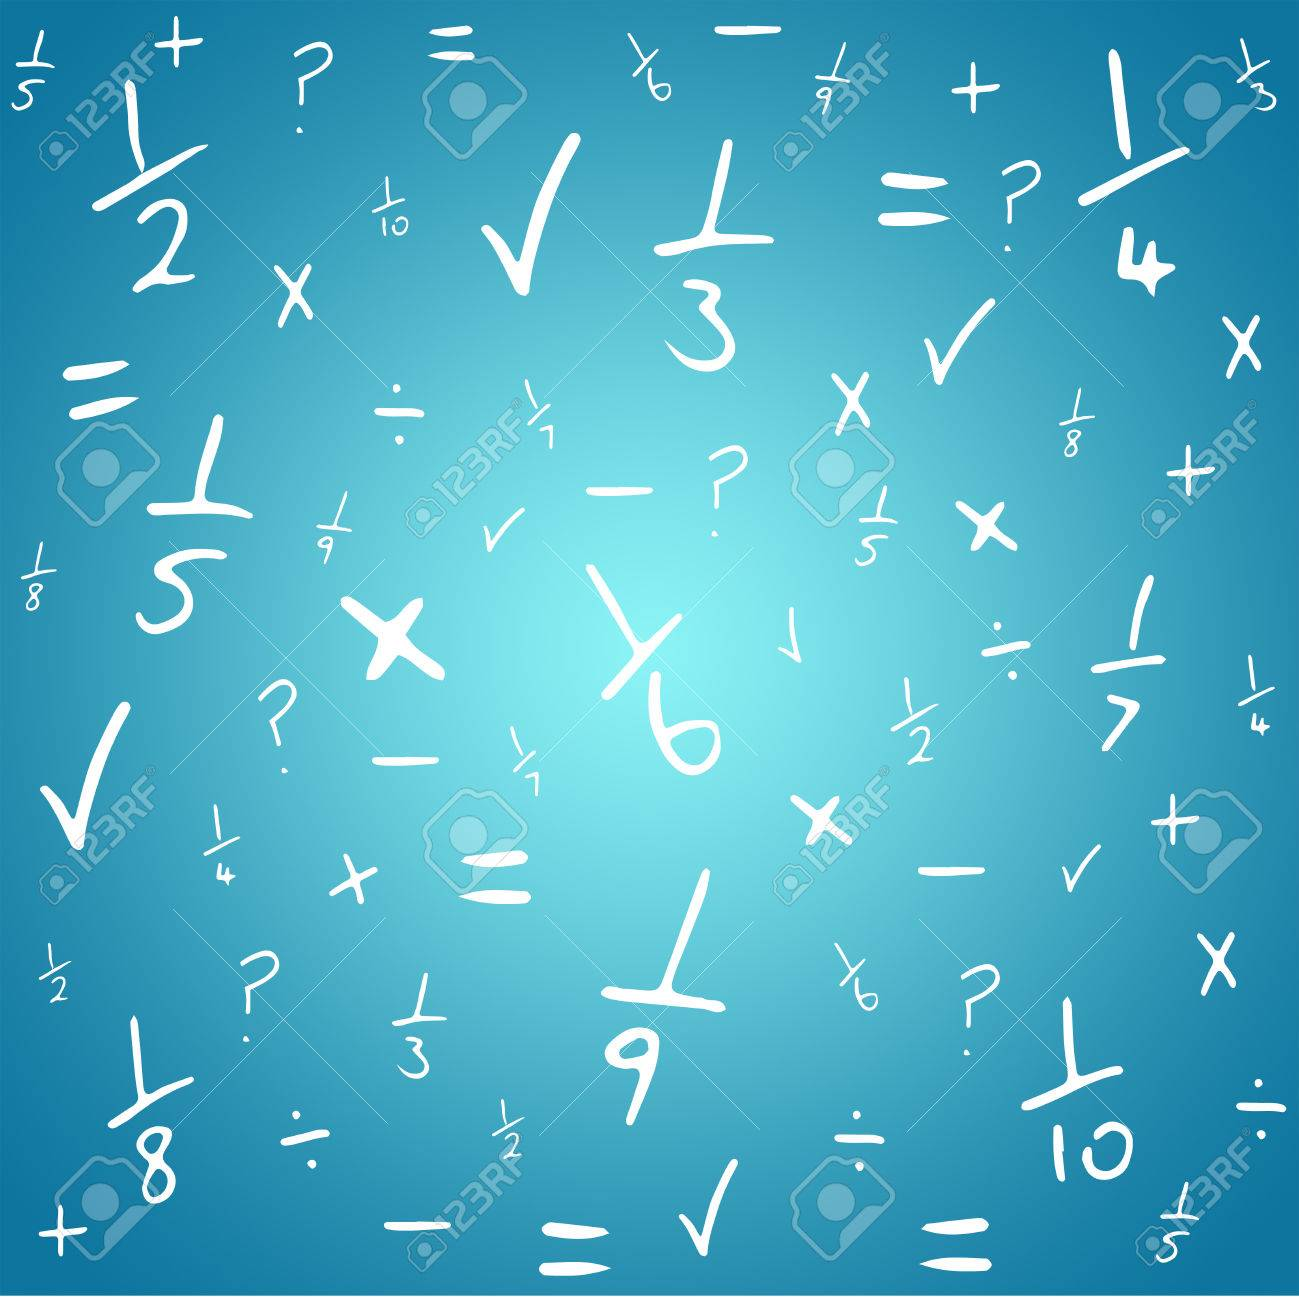 Maths Against Blue Vignette Background Stock Photo, Picture And ...